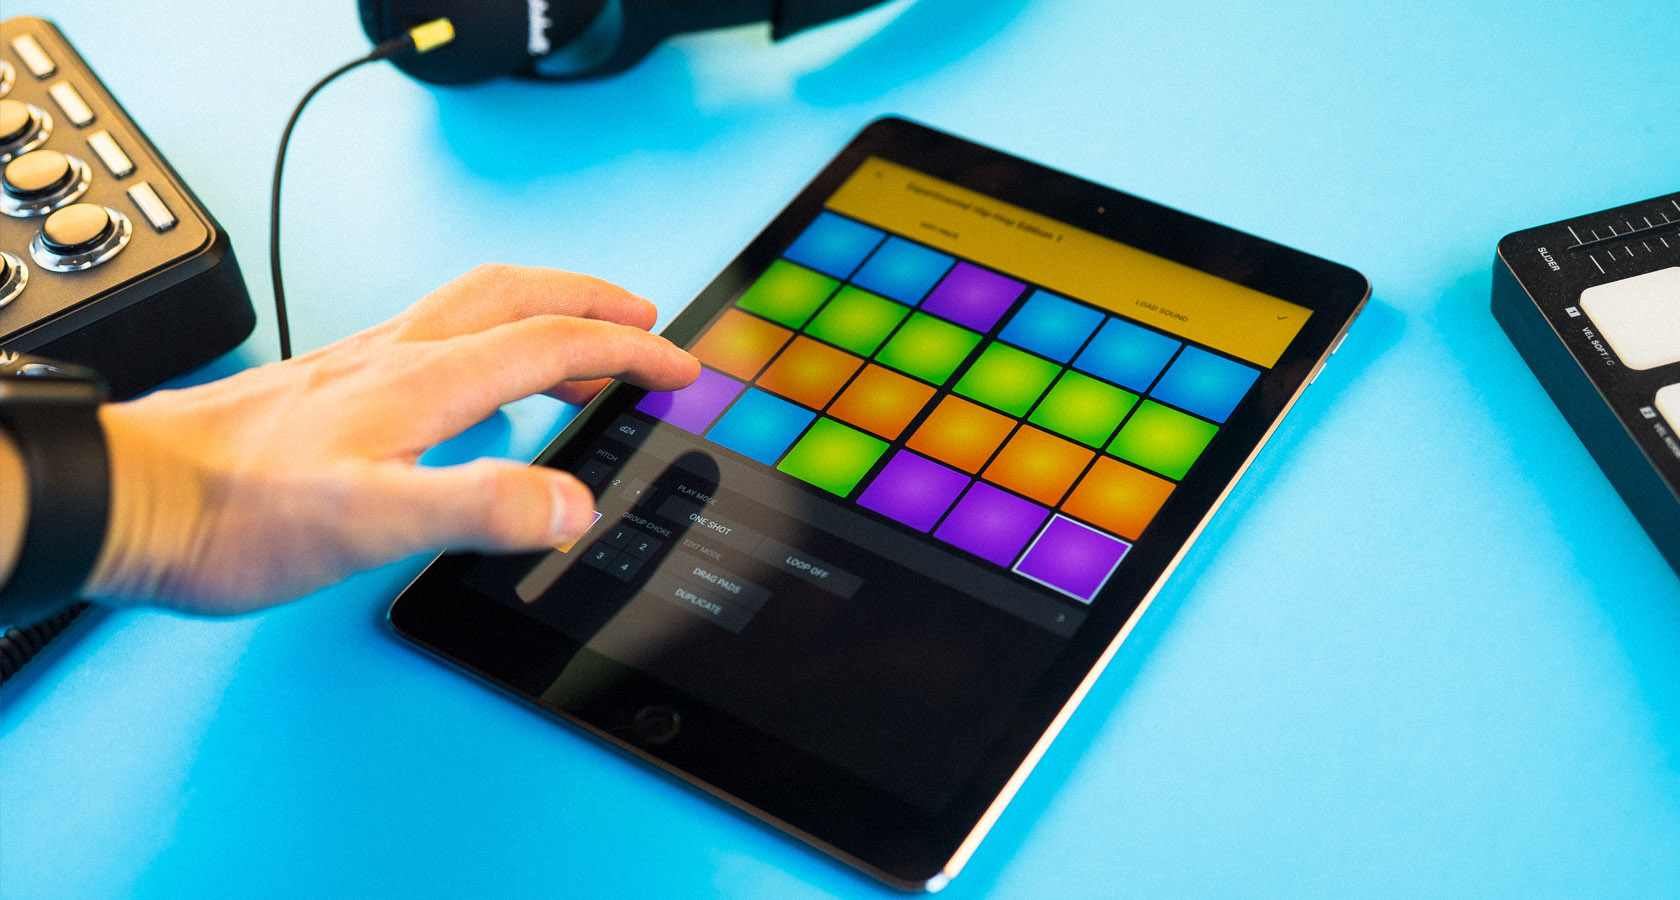 Drum Pads 24| Free app for iOS and Android